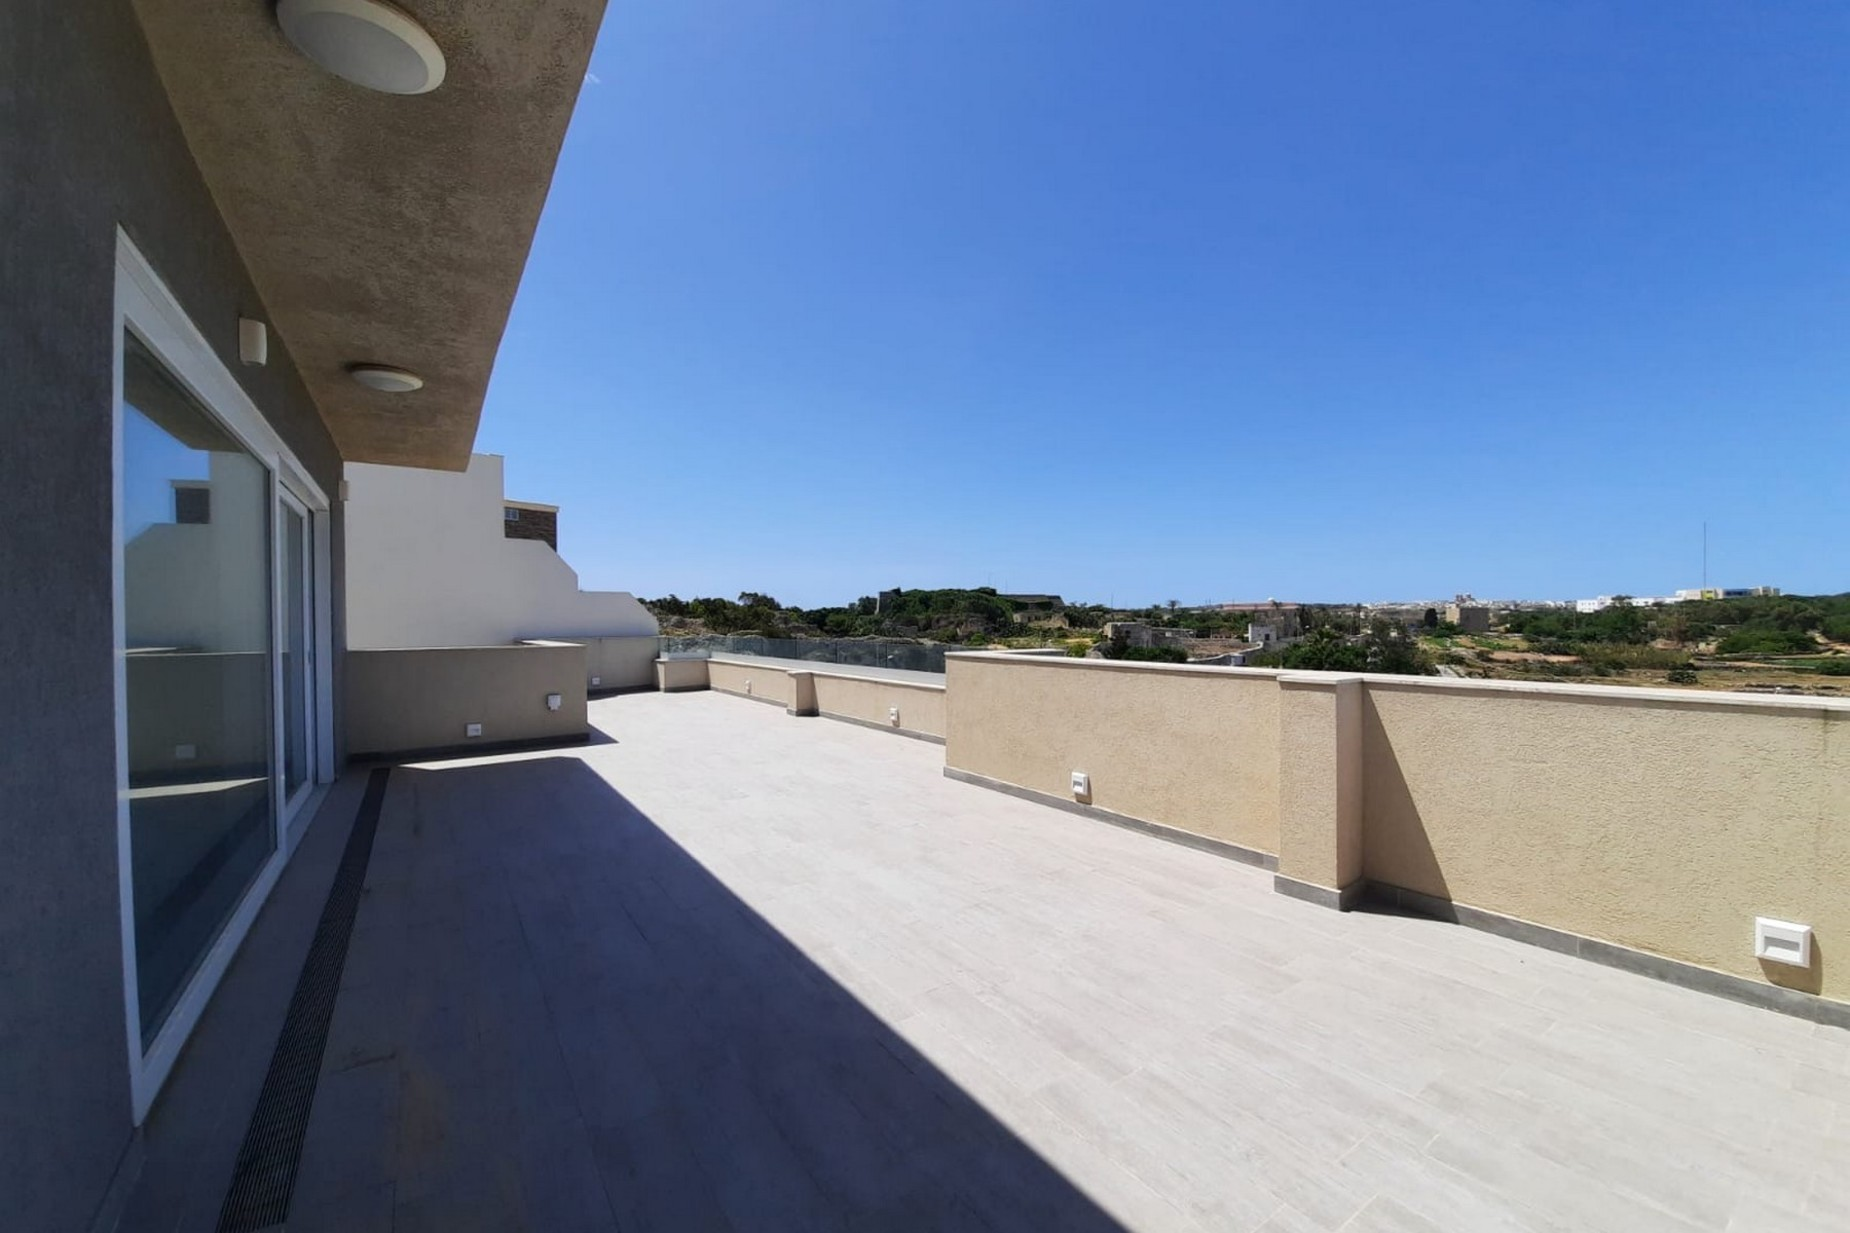 3 bed Penthouse For Rent in Rabat, Rabat - thumb 3